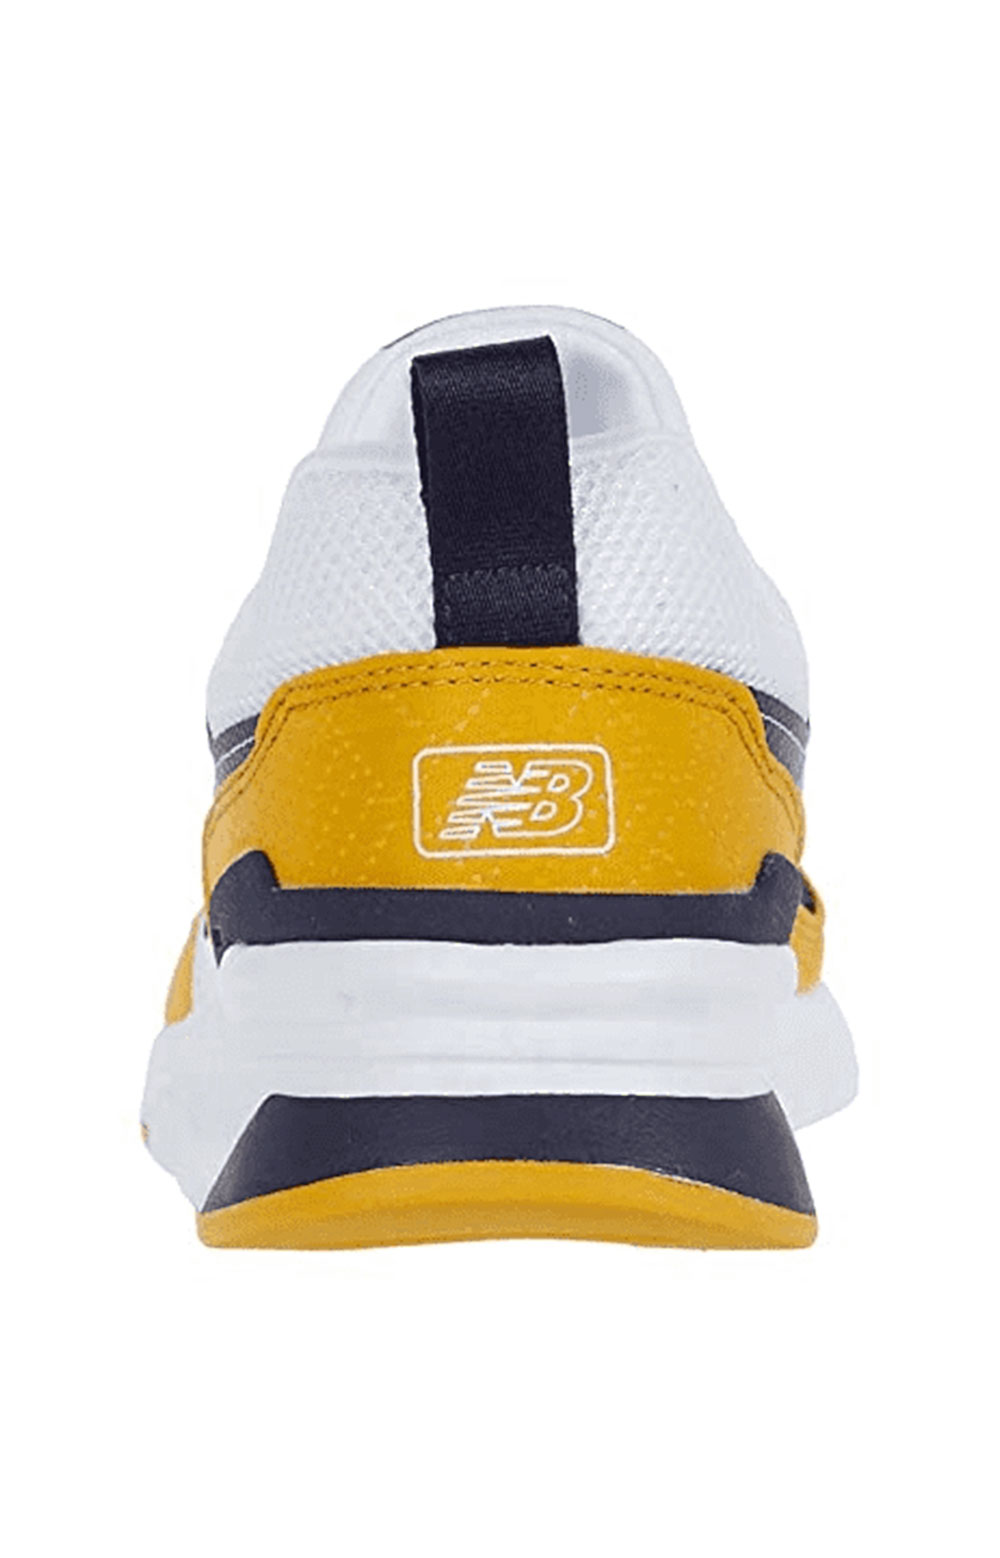 (CM997HBY) 997H Shoes - Yellow/Navy 5